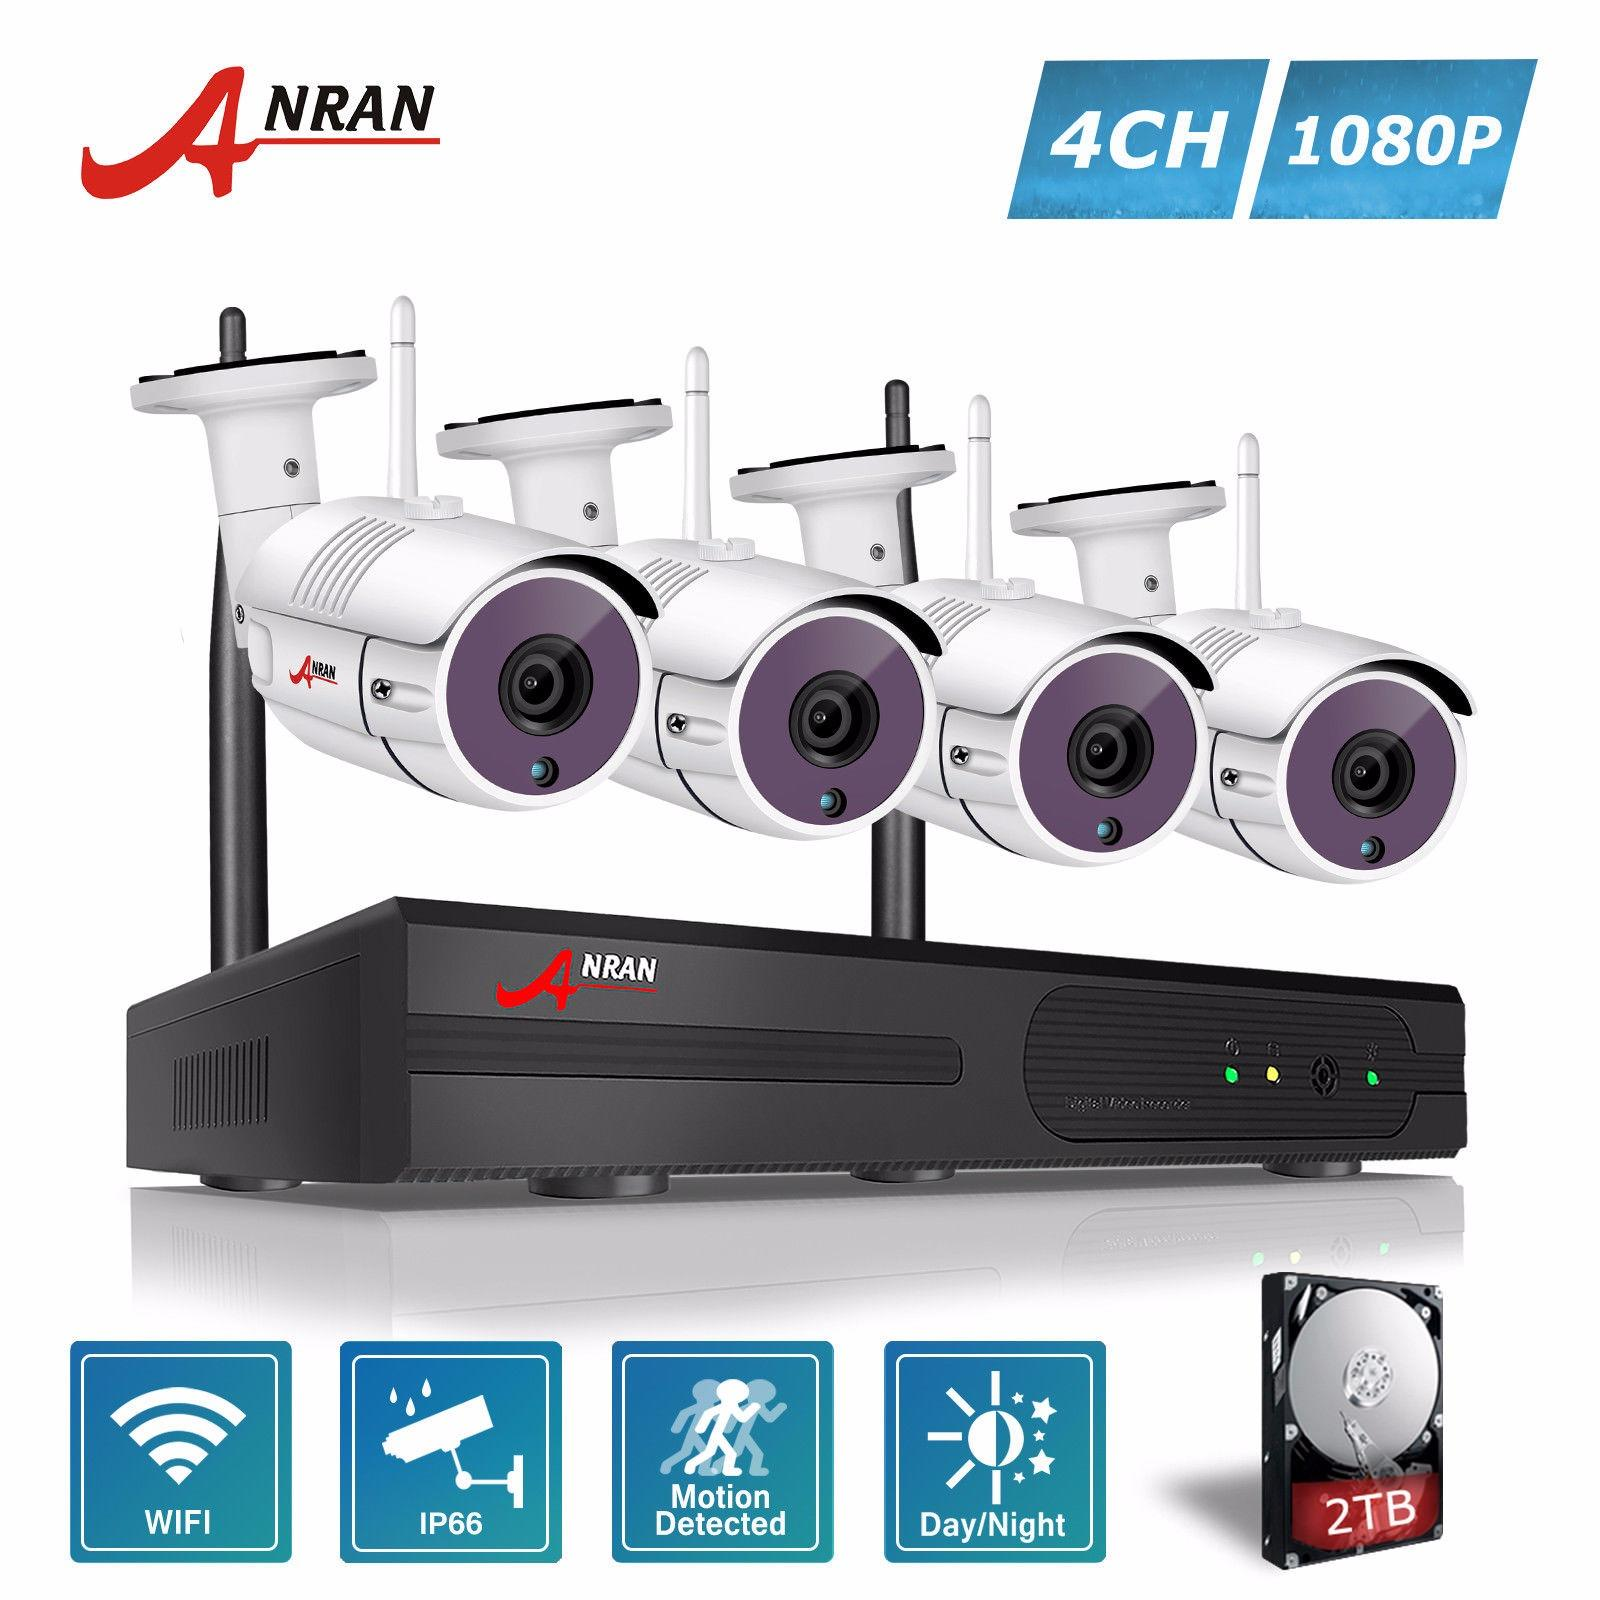 Toko Anran 4Ch Wireless Nvr Cctv Kit P2P 1080P Hd Outdoor Wifi Mini Ip Camera 36Ir Security Surveillance System Terlengkap Tiongkok